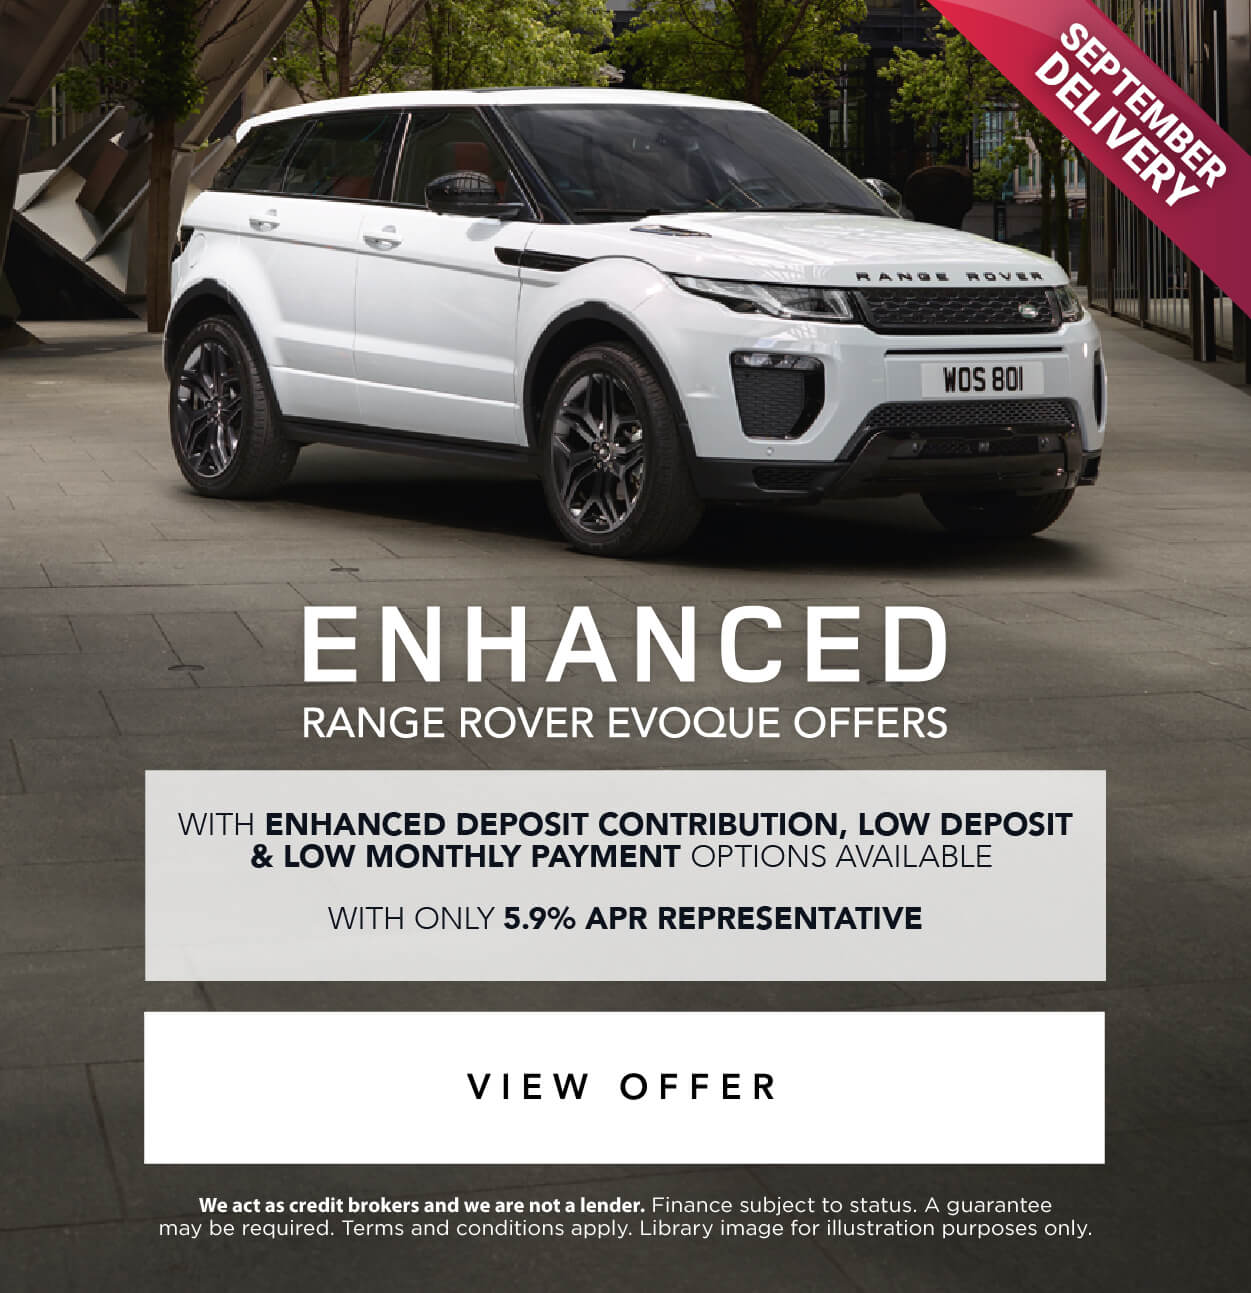 Jaguar For Sale In Houston: New And Used Land Rover Dealership